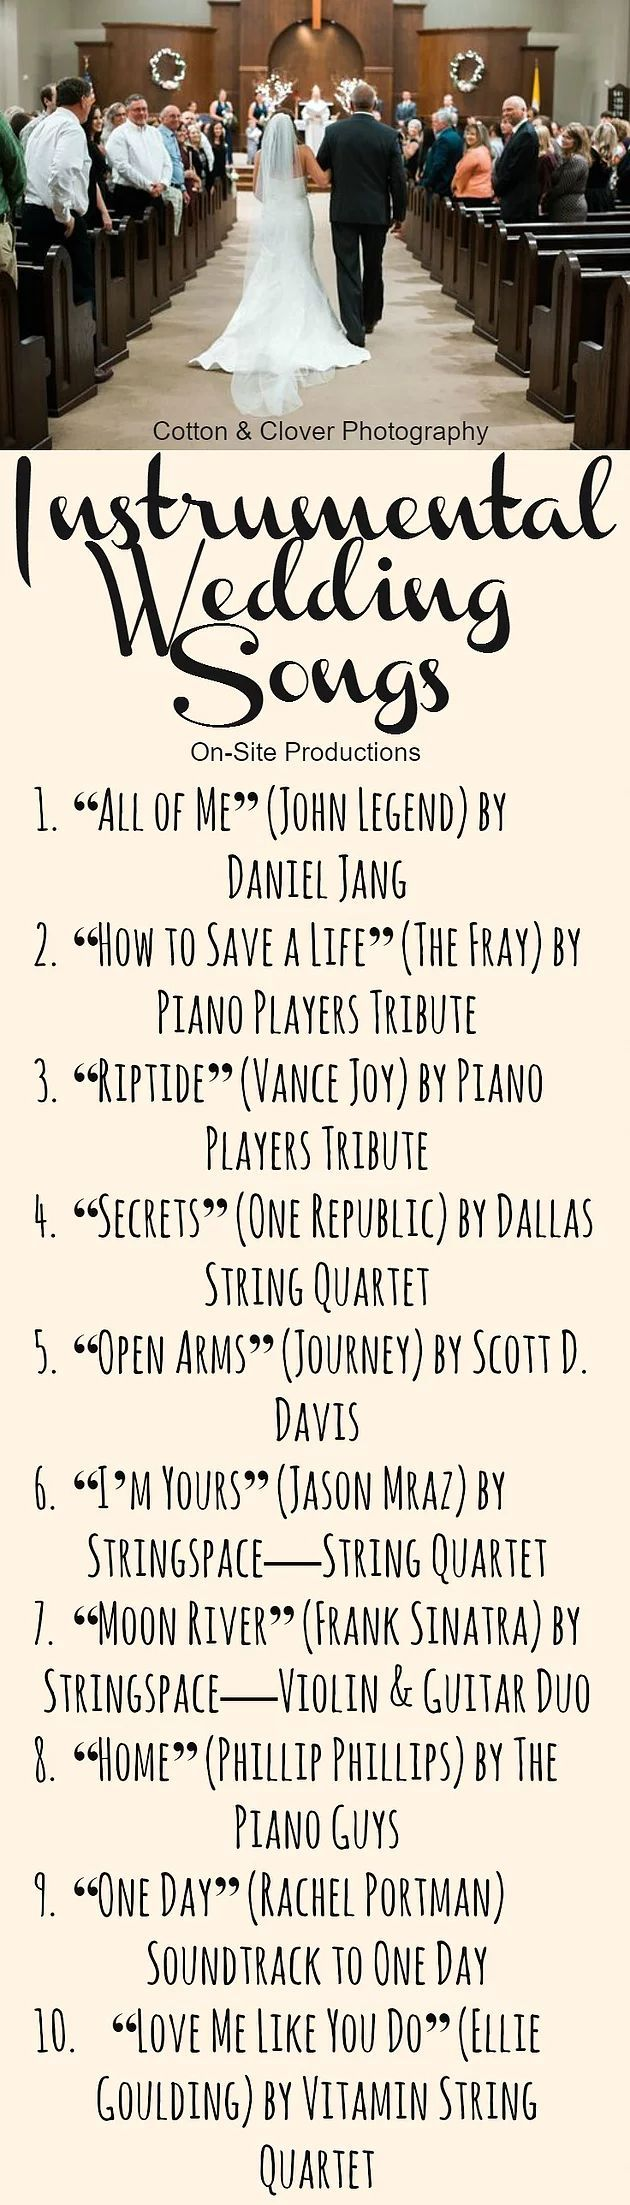 The perfect INSTRUMENTAL songs for your walk down the aisle. I love that guests will know the songs but it's an instrumental version instead! I'm totally walking down the aisle to #10!!!